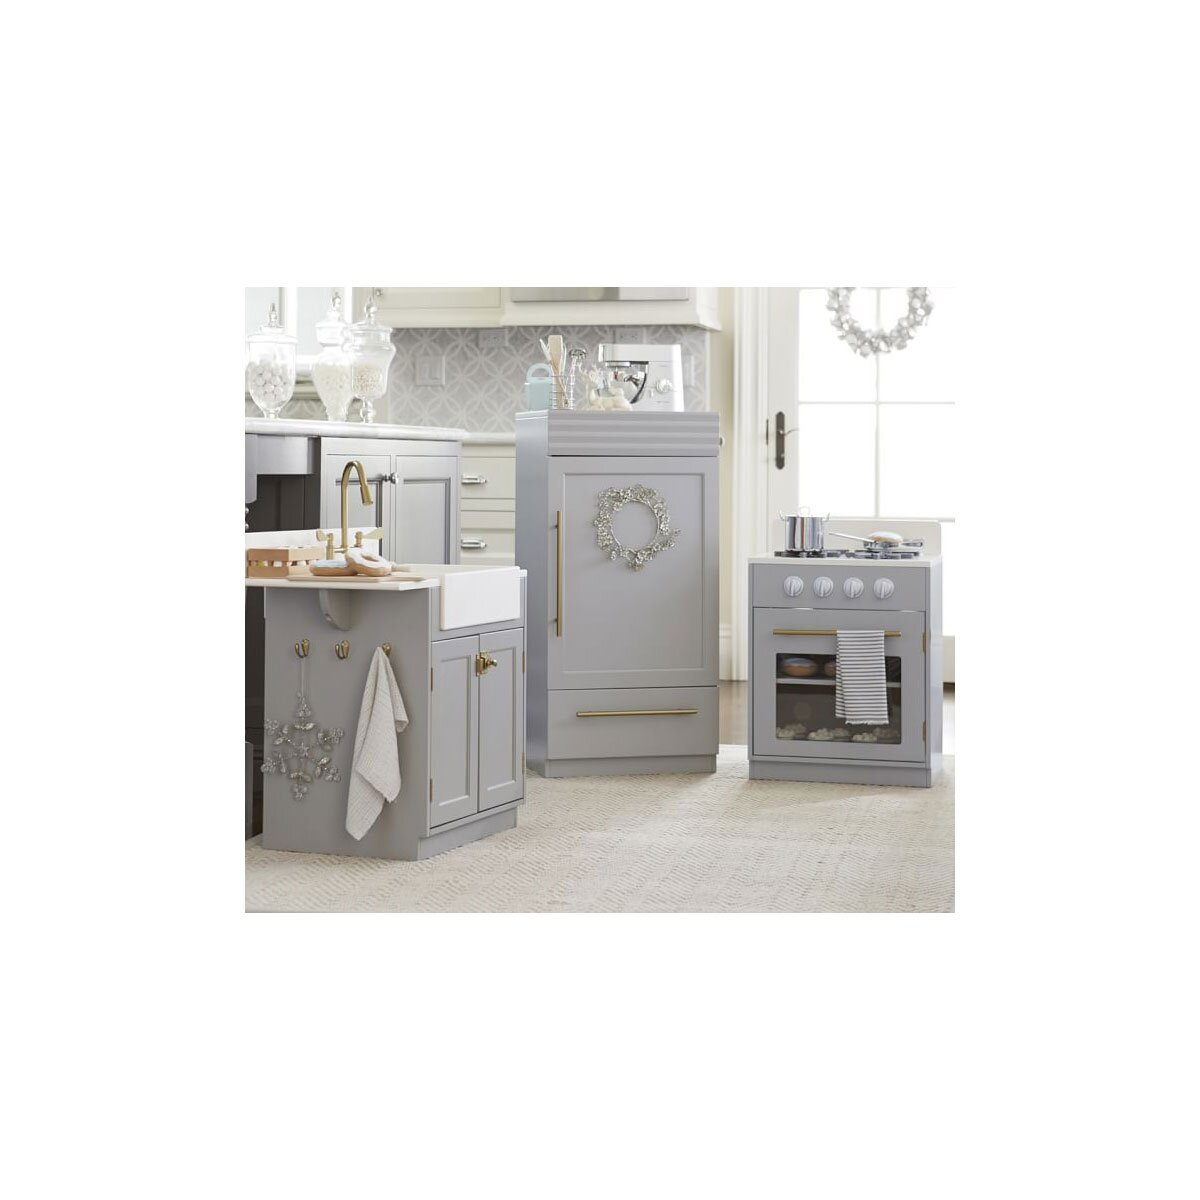 10 Best Toy Kitchen Sets For Toddlers 2019 Southern Living